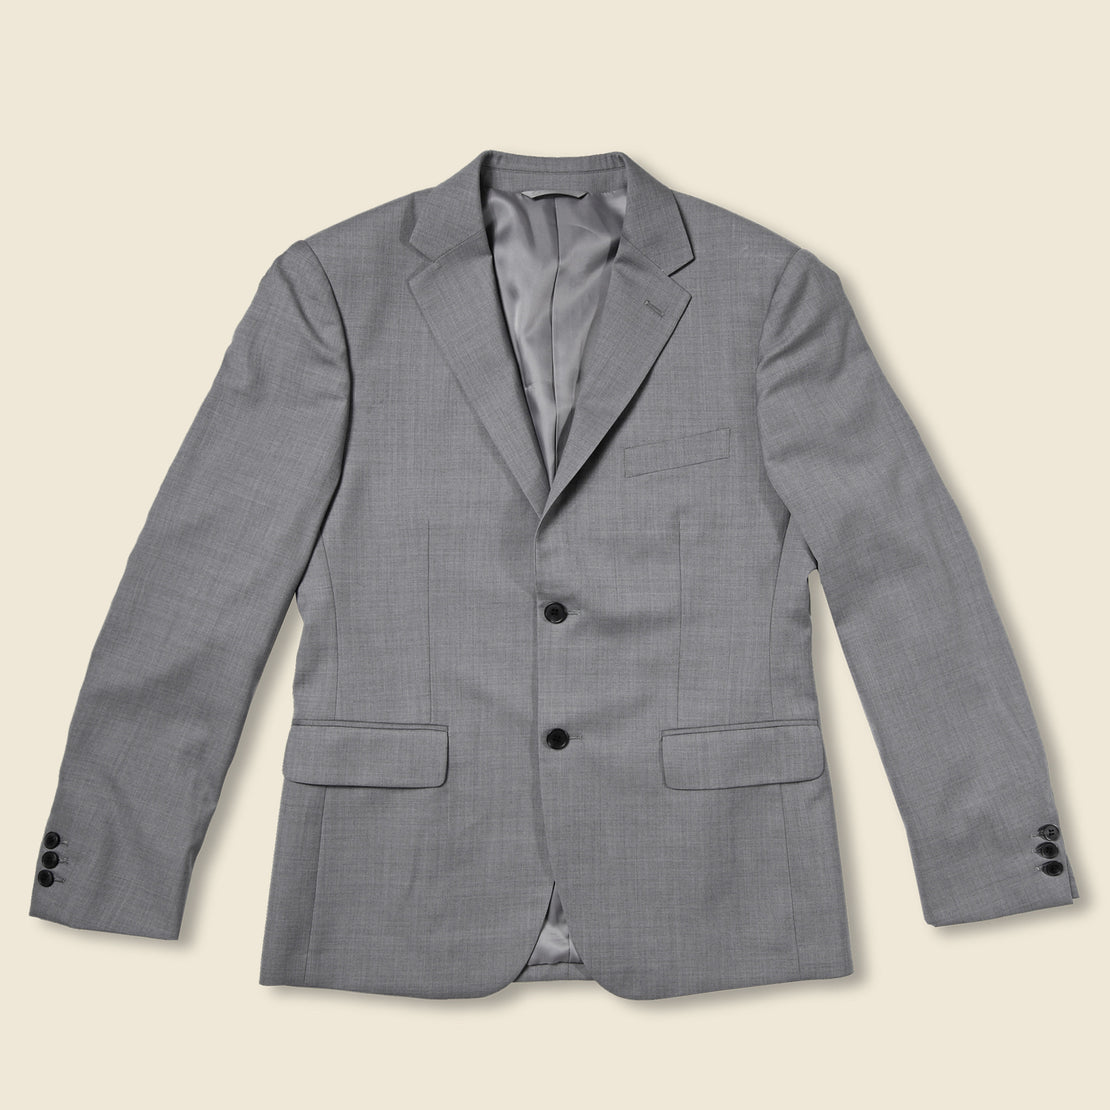 General Assembly Suit Jacket - Grey